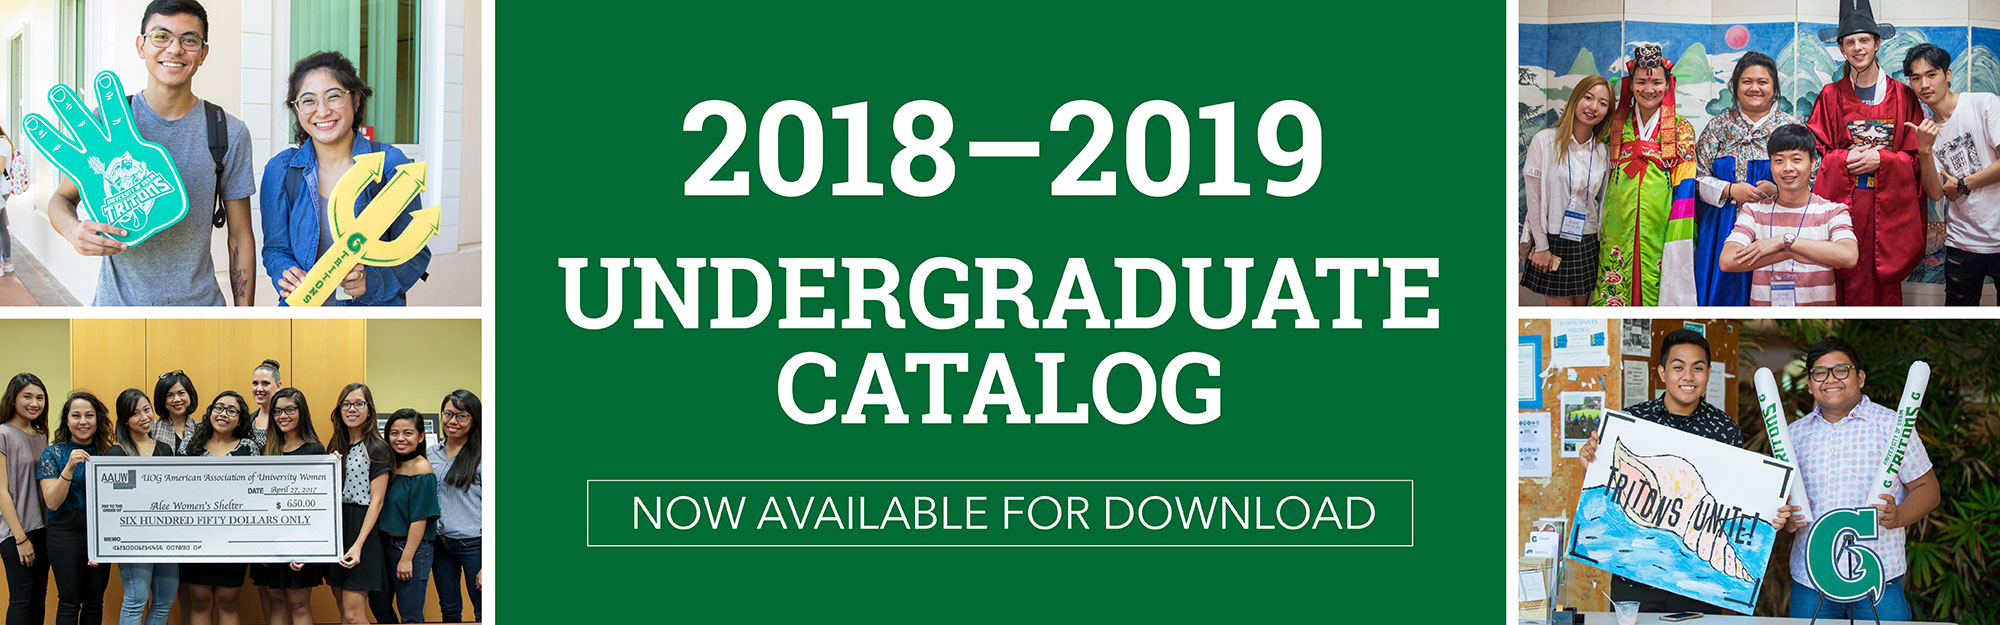 Download the newest catalog.